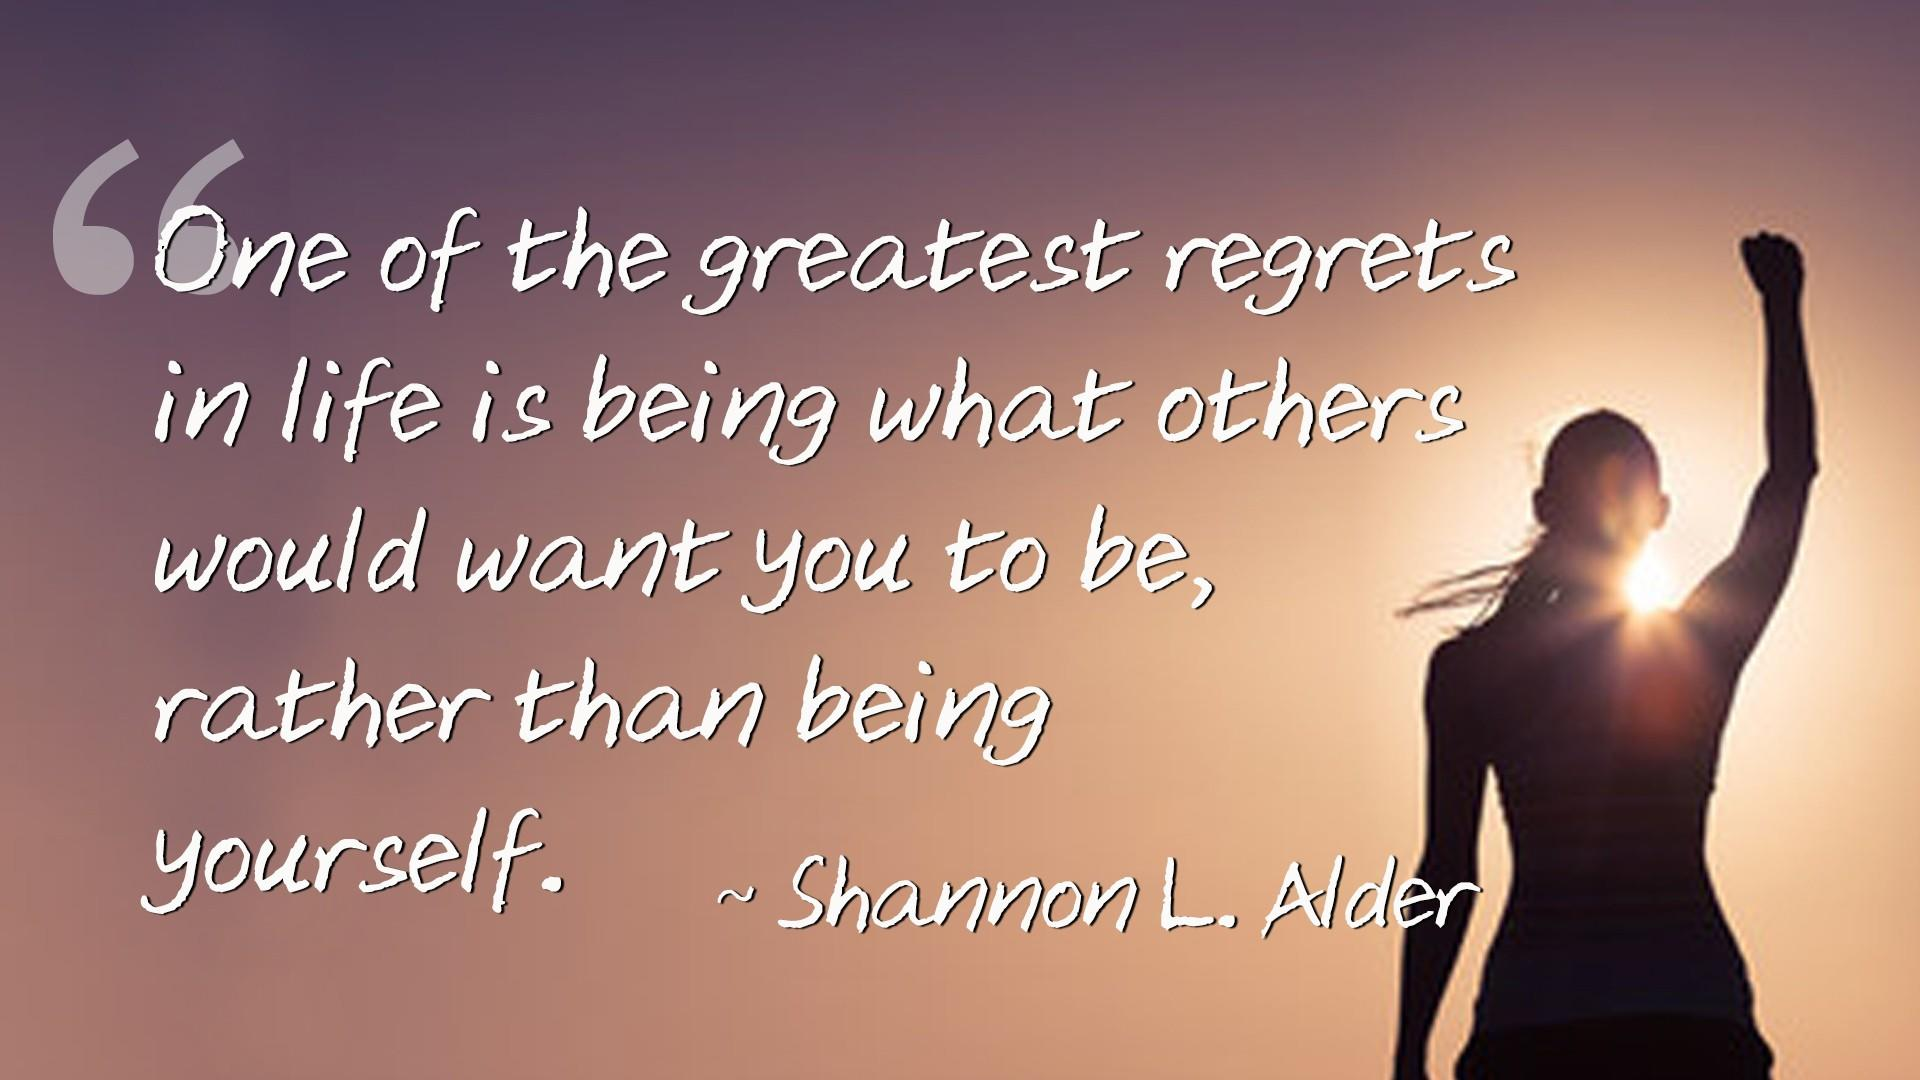 Shannon L. Alder Quote - One of the greatest regrets in life is being what others would want you to be, rather than being yourself